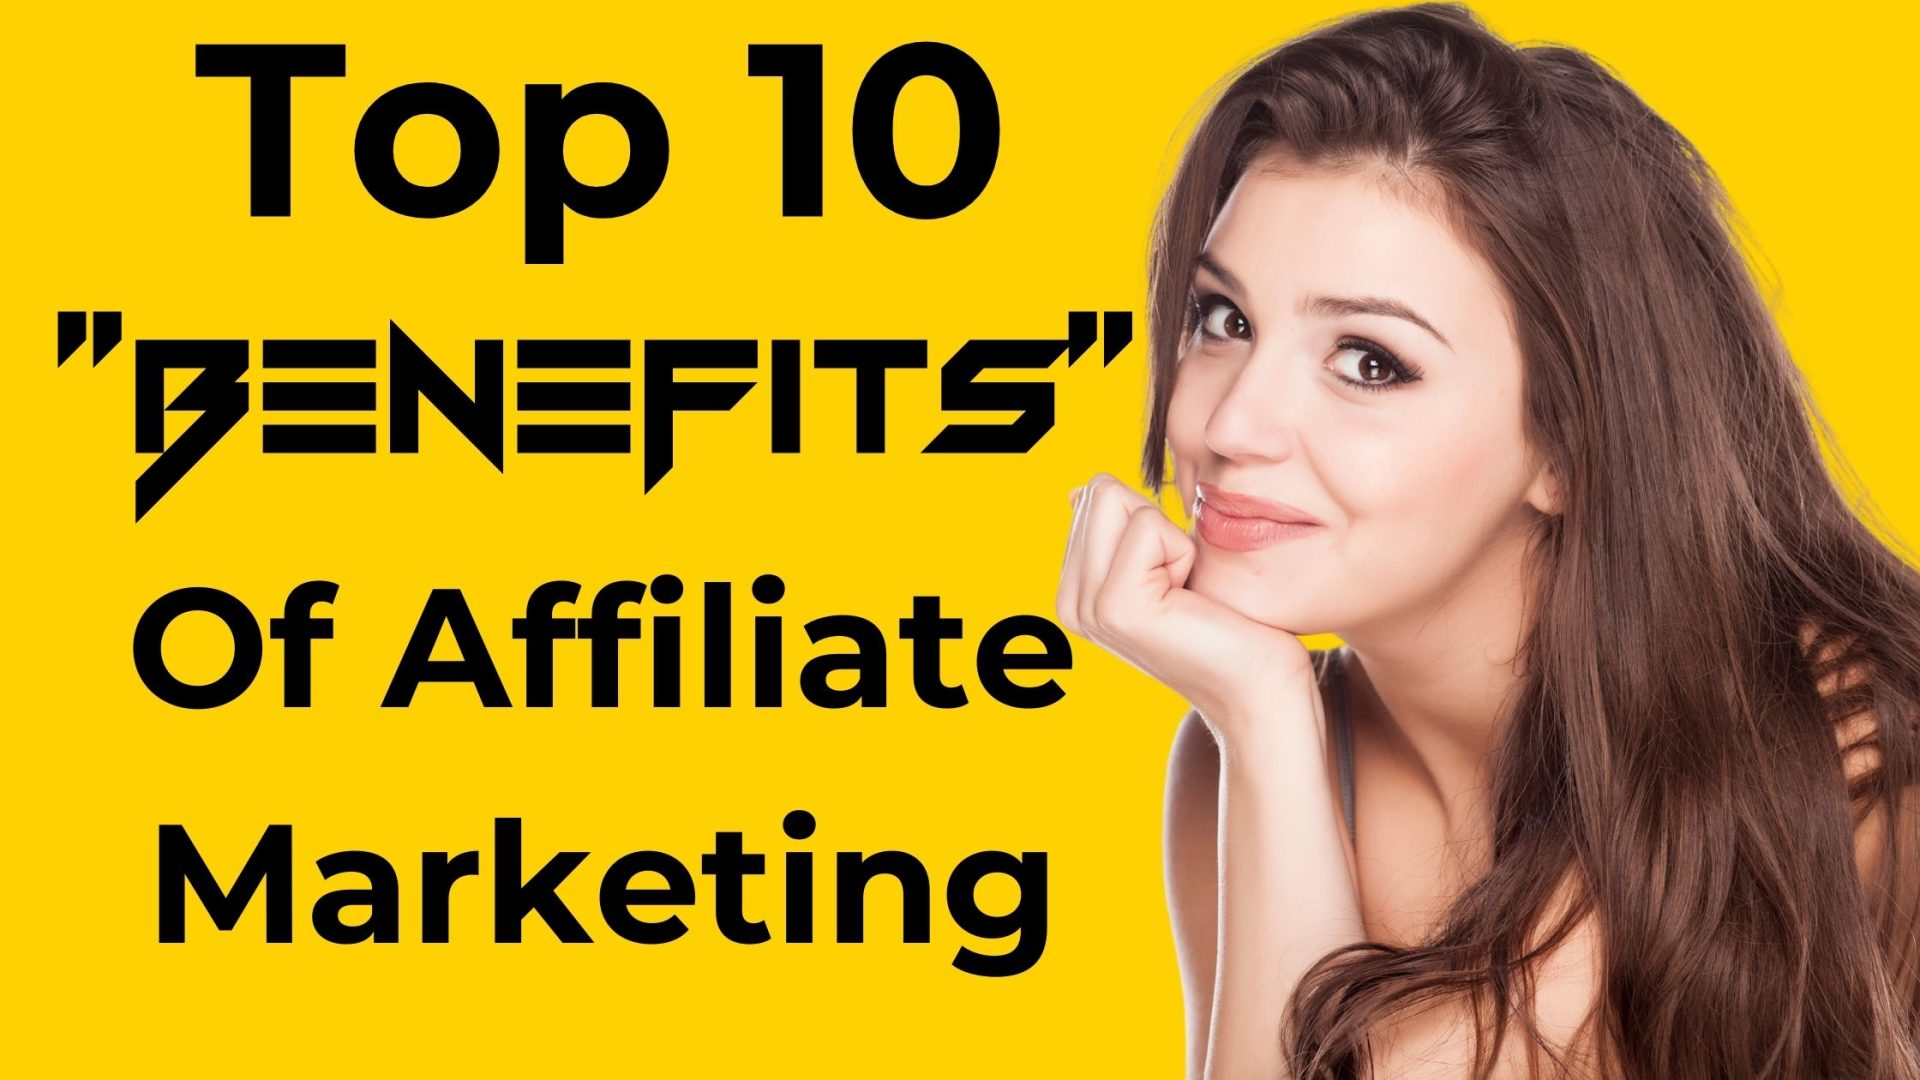 Top 10 Benefits Of Affiliate Marketing Business For Beginners.